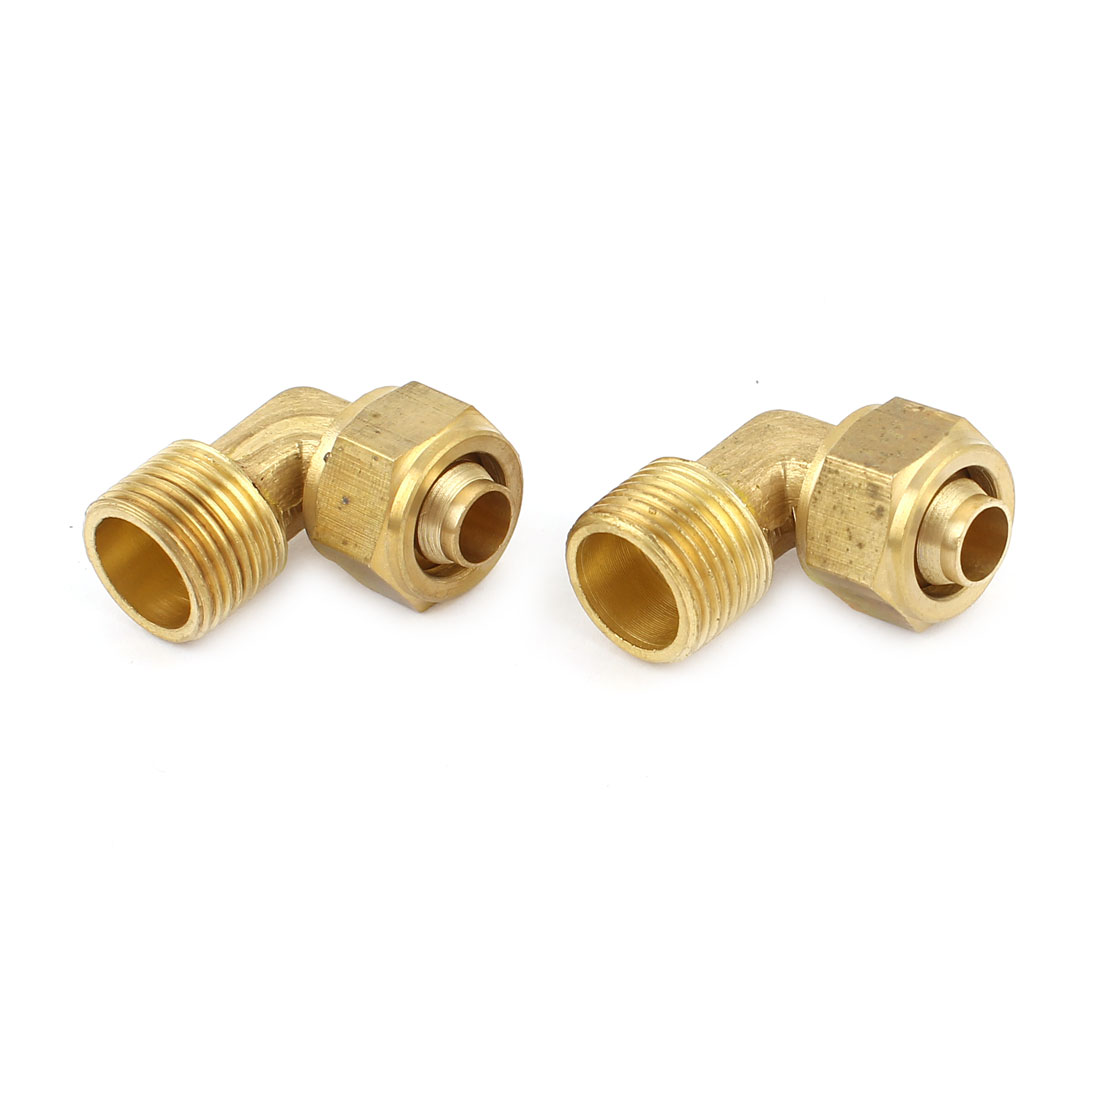 2pcs Air Pneumatic 8mm Tube 3/8PT Thread Right Angle Quick Couplers